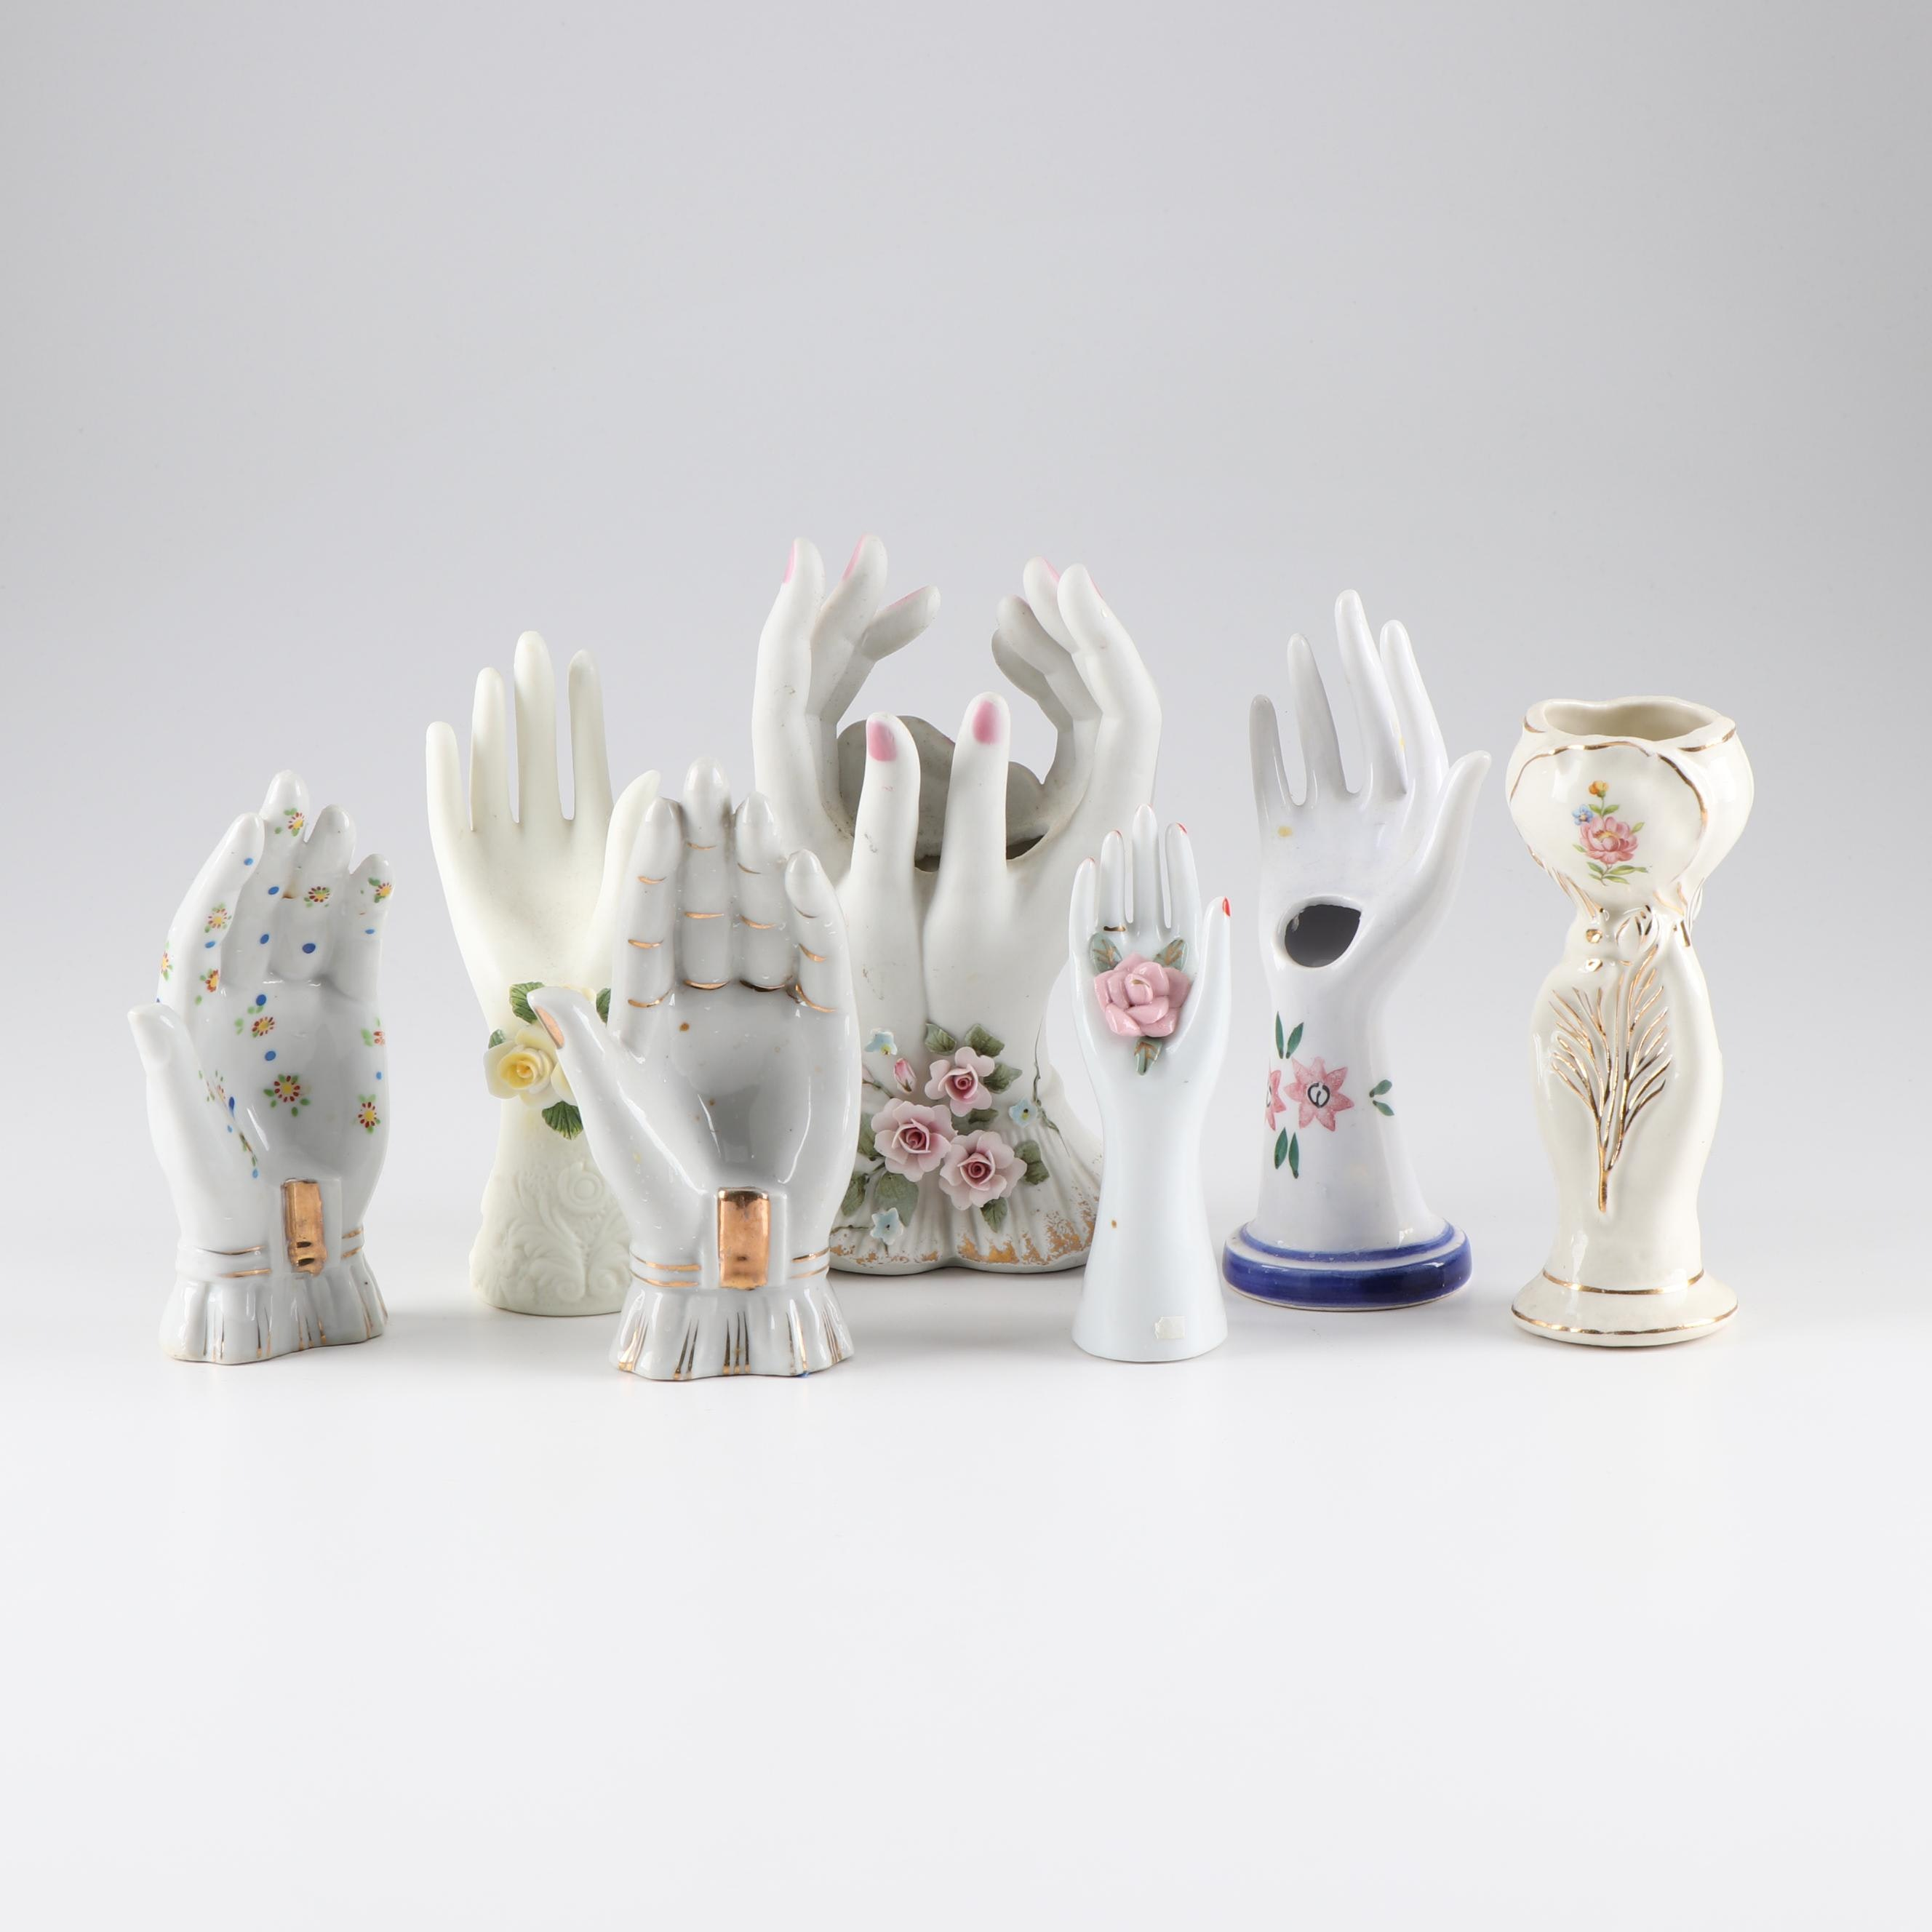 Lefton and Other Porcelain and Ceramic Hand Vases and Ring Holders, Mid-Century